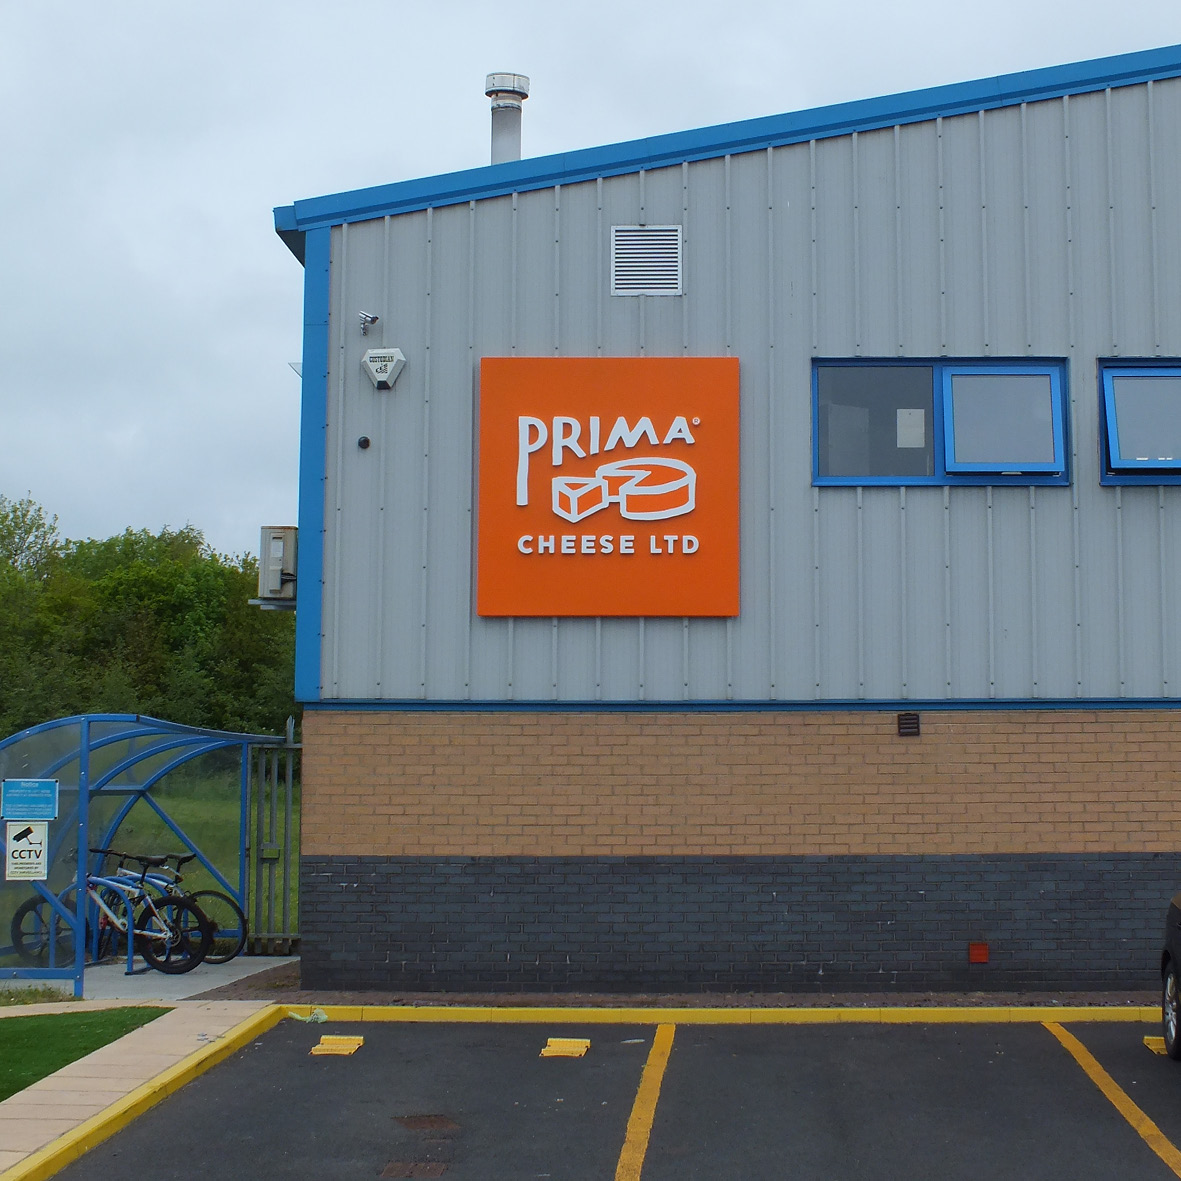 New Job Opportunities at Prima!